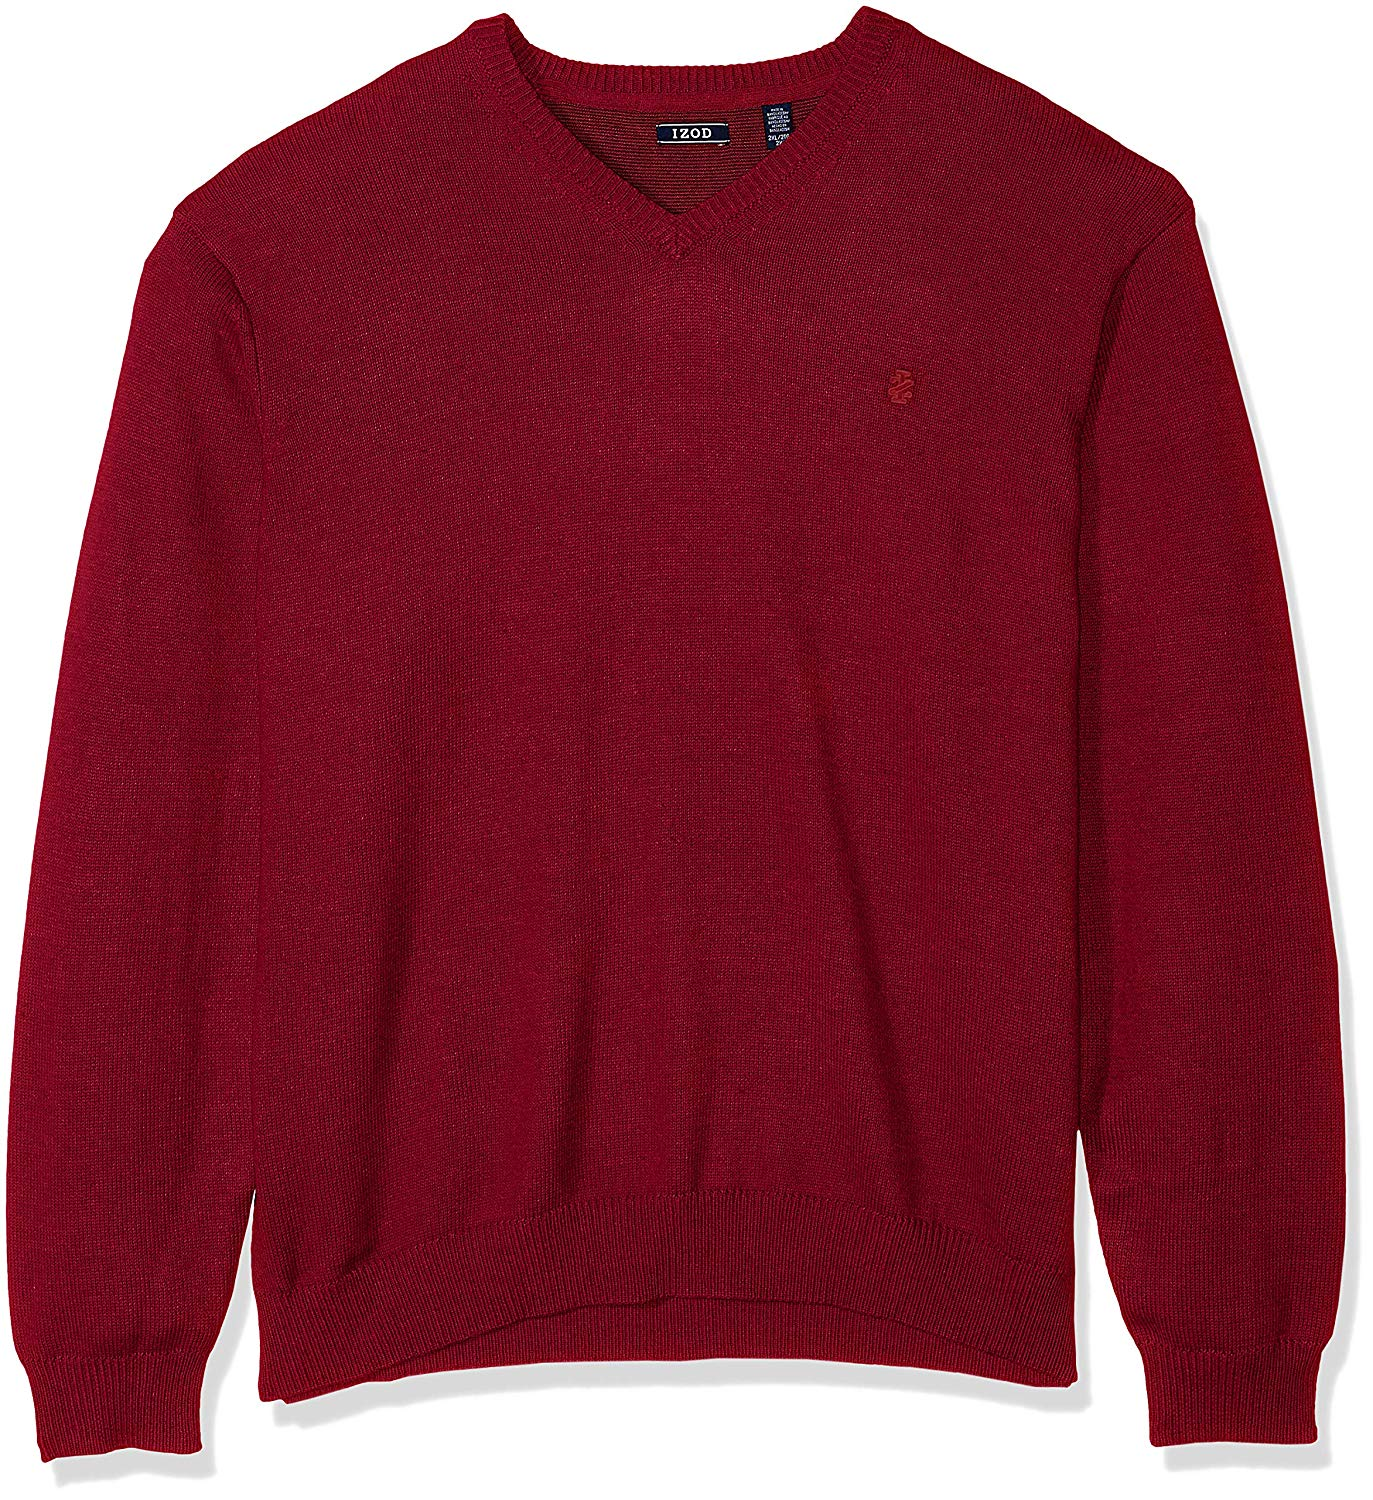 IZOD Men's Big and Tall Premium Essentials Fine Gauge Solid V-Neck Sweater, Biking Red, 2X-Large